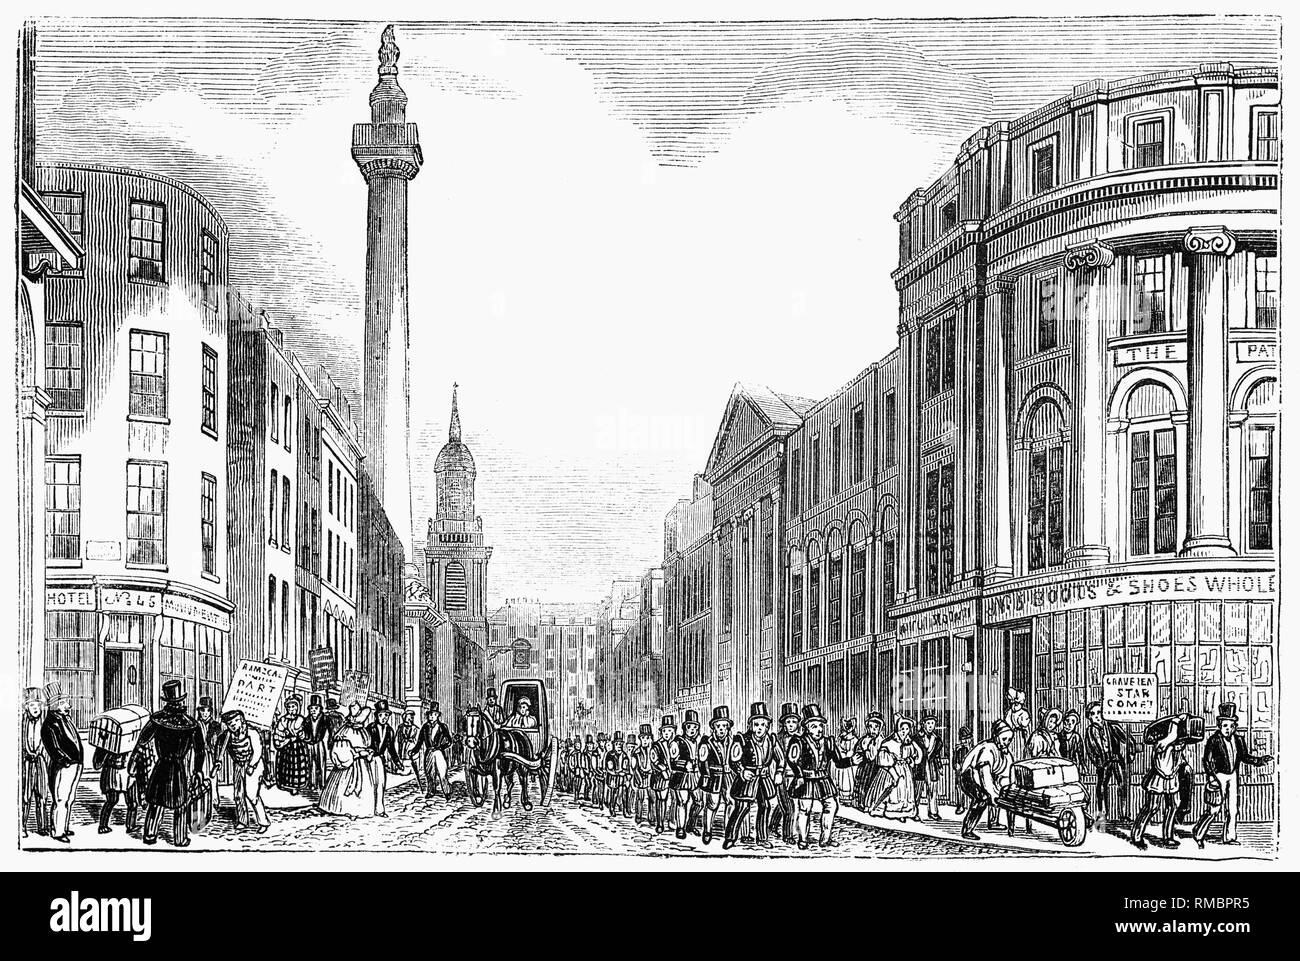 Members of the 19th century London Fire Brigade march on Old Fish Street Hill below the Monument to the Great Fire, a Doric column in London, United Kingdom, situated near the northern end of London Bridge. Commemorating the Great Fire of London, it stands at the junction of Monument Street and Fish Street Hill, 202 feet just west of the spot in Pudding Lane where the Great Fire started on 2 September 1666. Constructed between 1671 and 1677, it was built on the site of St. Margaret's, Fish Street, the first church to be destroyed by the Great Fire. - Stock Image